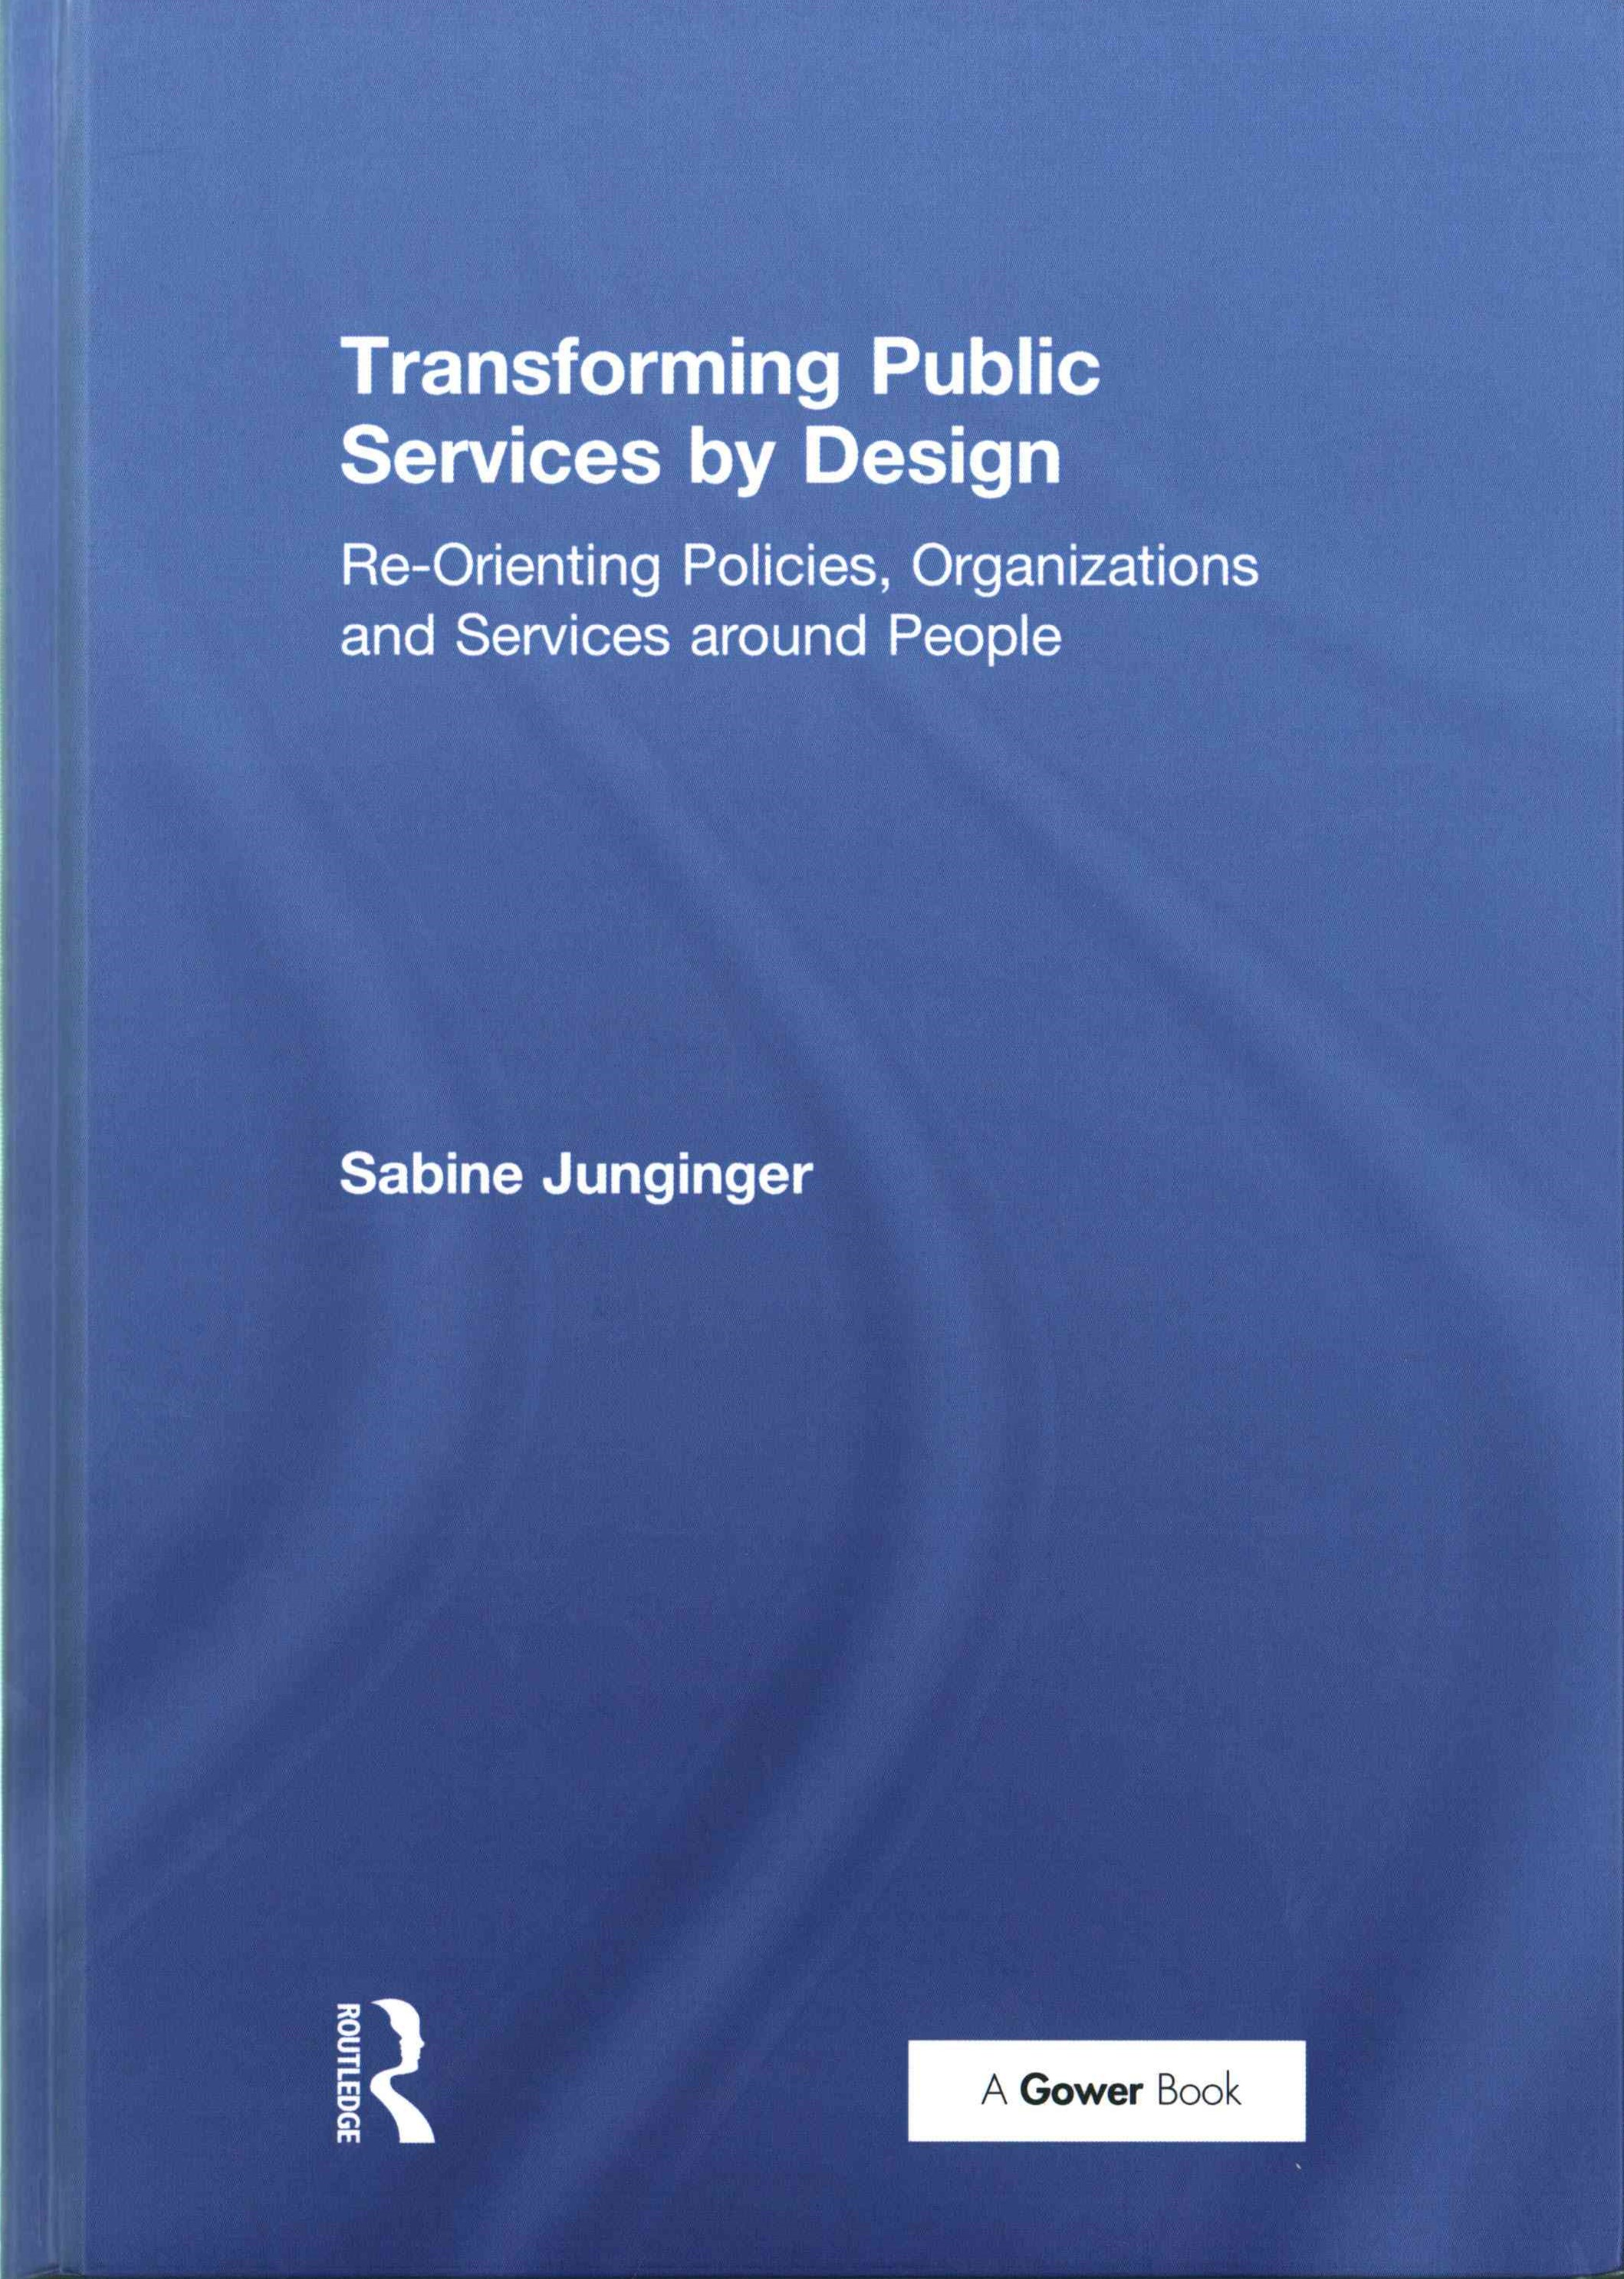 Transforming Public Services by Design